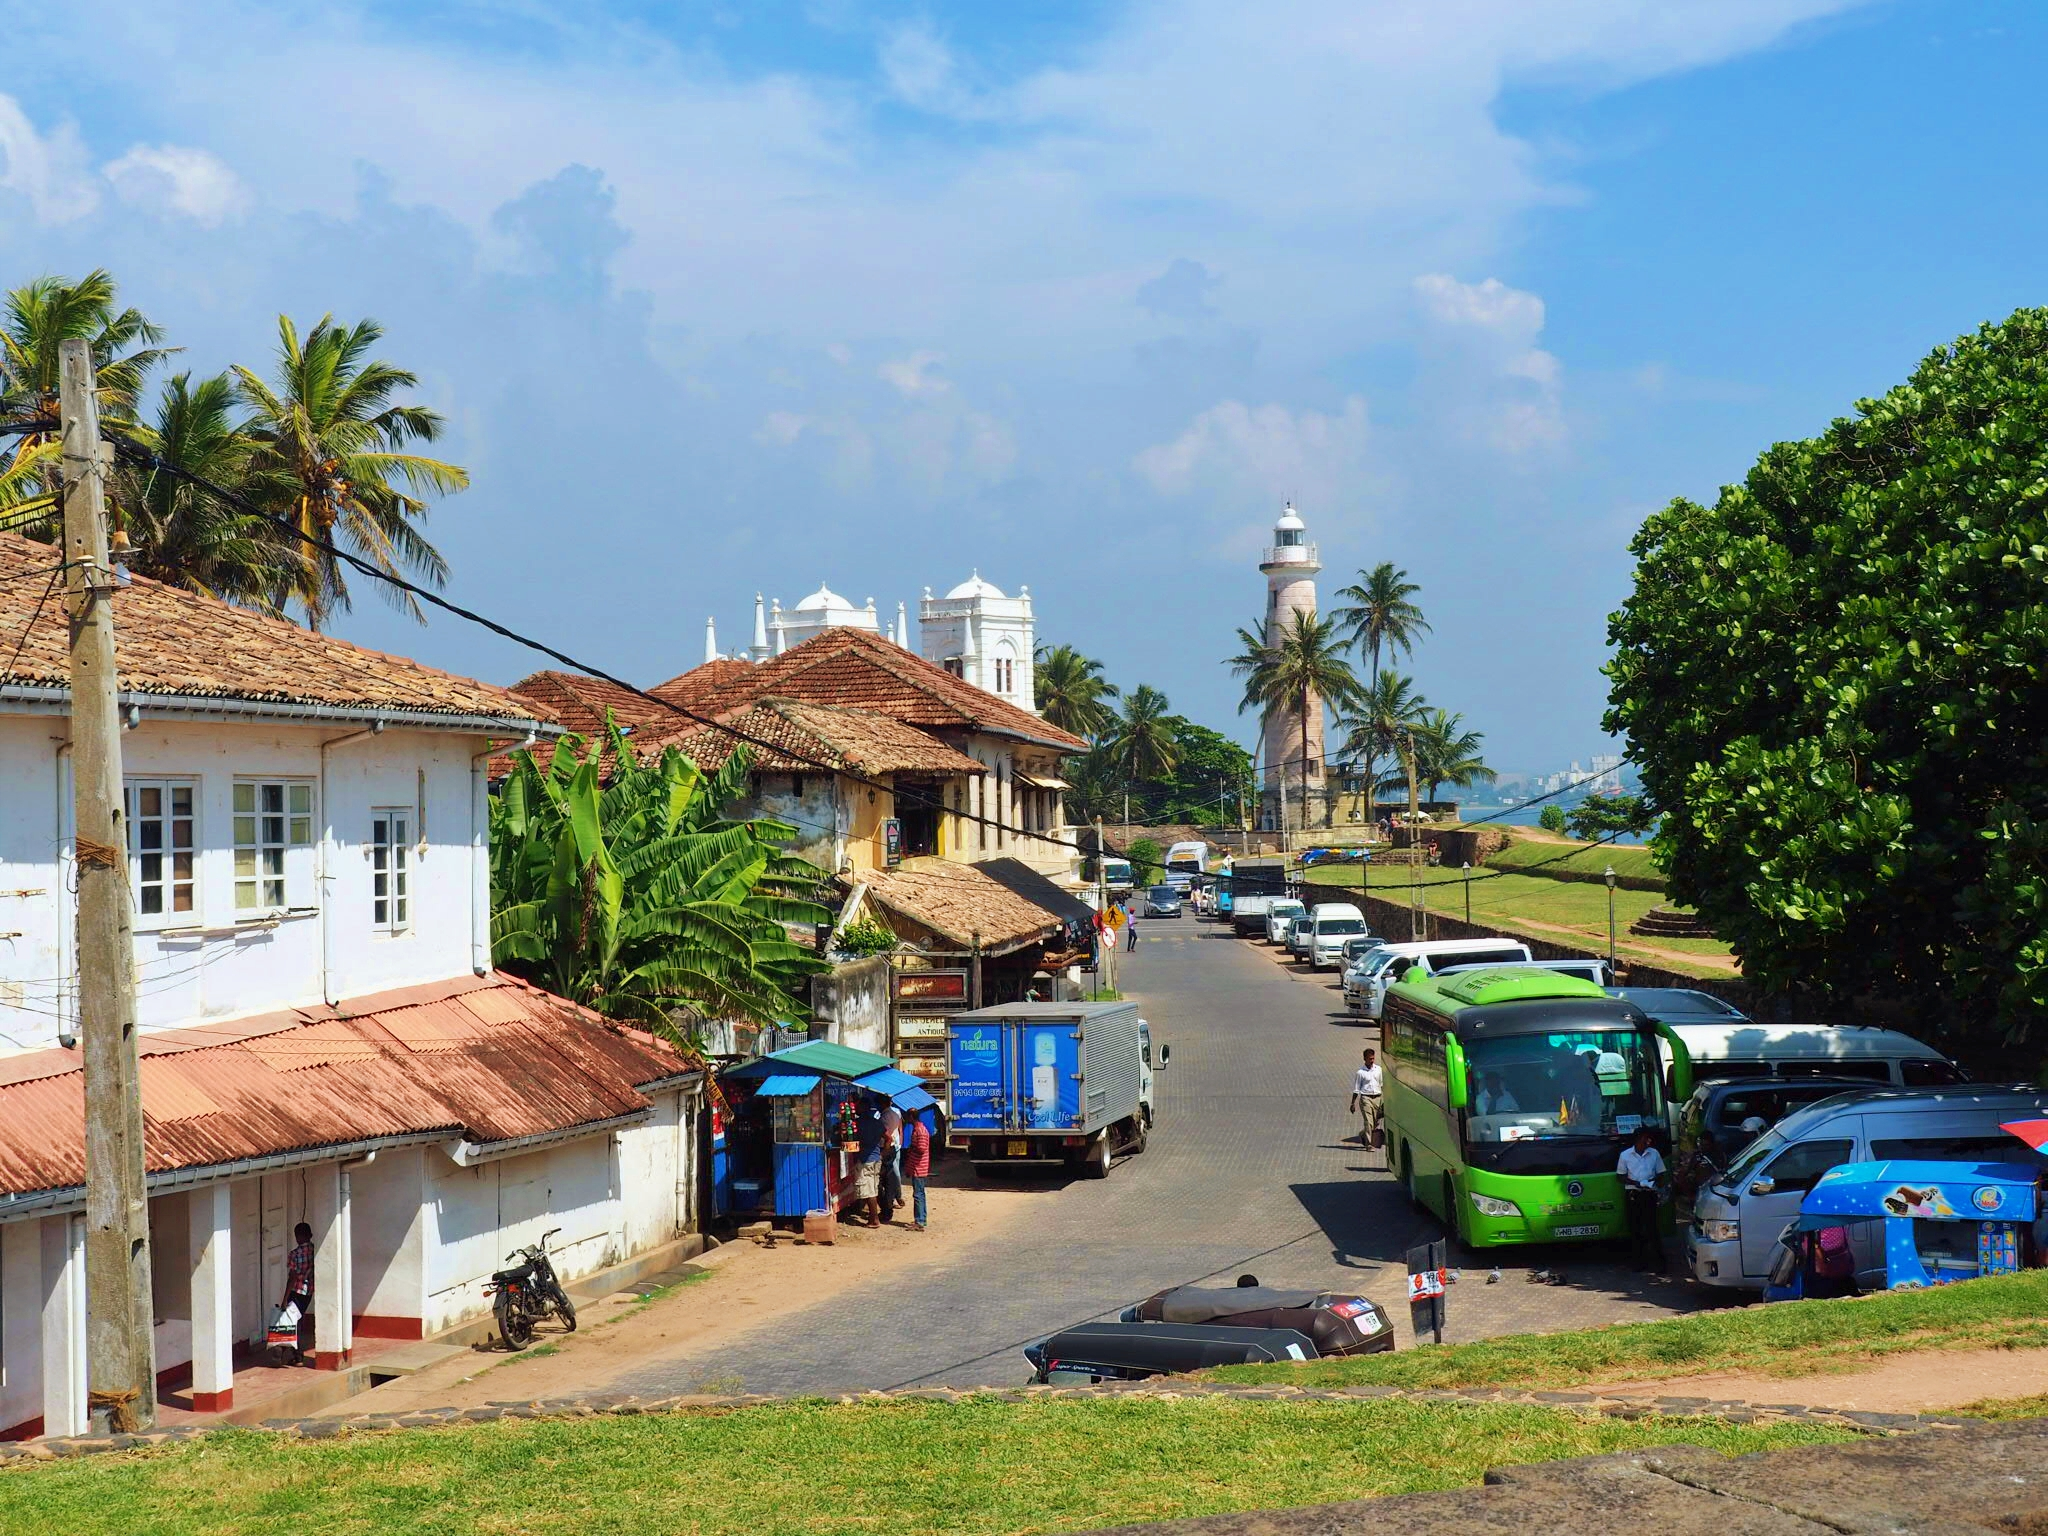 …but the sedate town of Galle might be the perfect place to put those running shoes on.